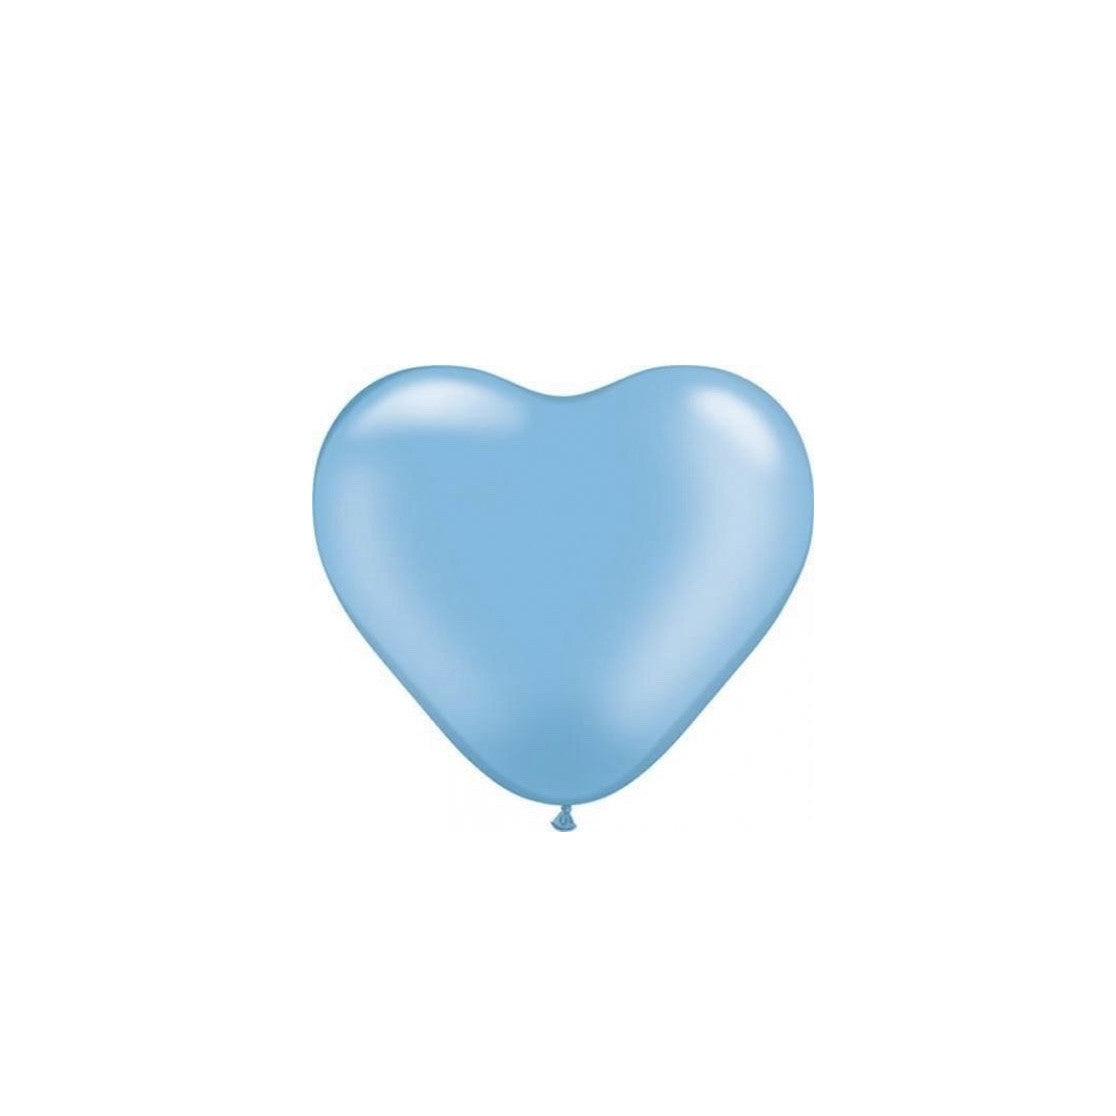 "Pearlized Heart Balloons - Blue 6"", SE-Surprize Enterprize, Putti Fine Furnishings"